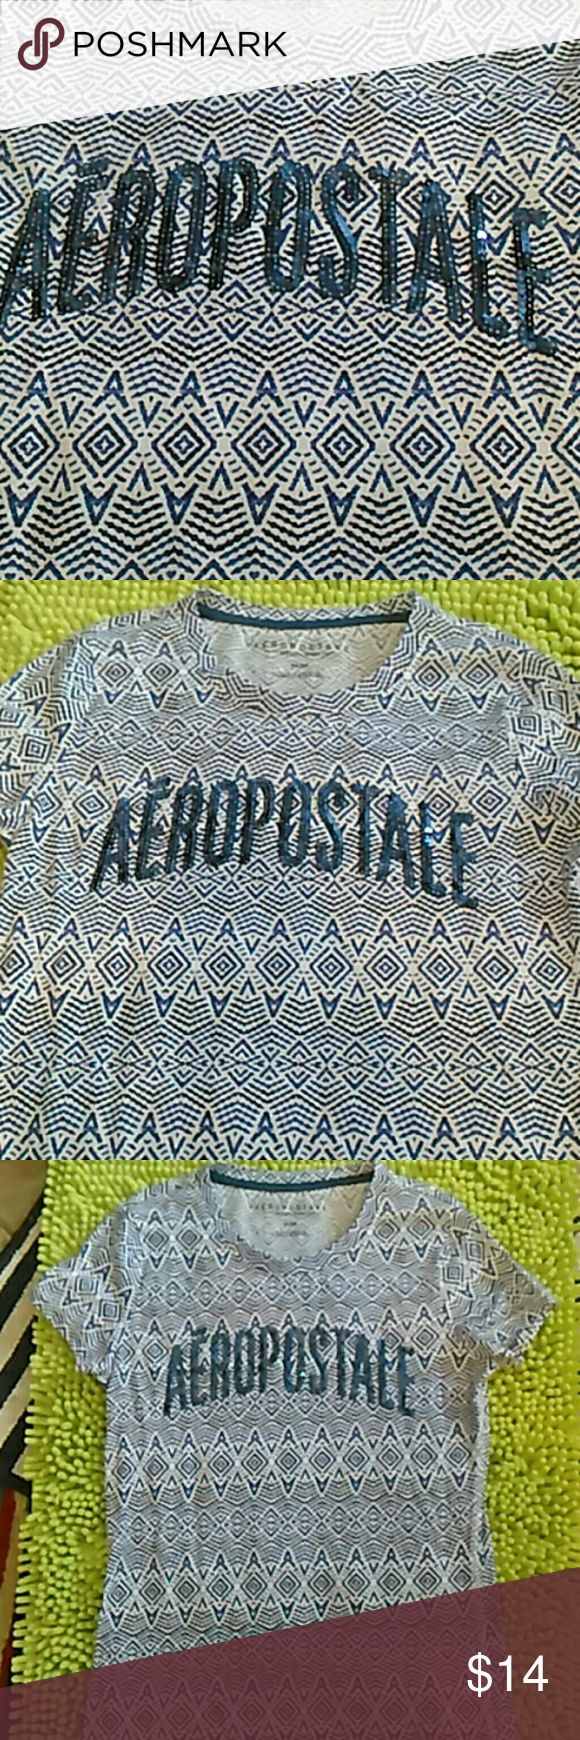 NWOT Blue Sequined Aeropostale Tshirt /med Women's medium t-shirt. New without tags. Pretty Aztec like pattern t-shirt. Aero Tops Tees - Short Sleeve